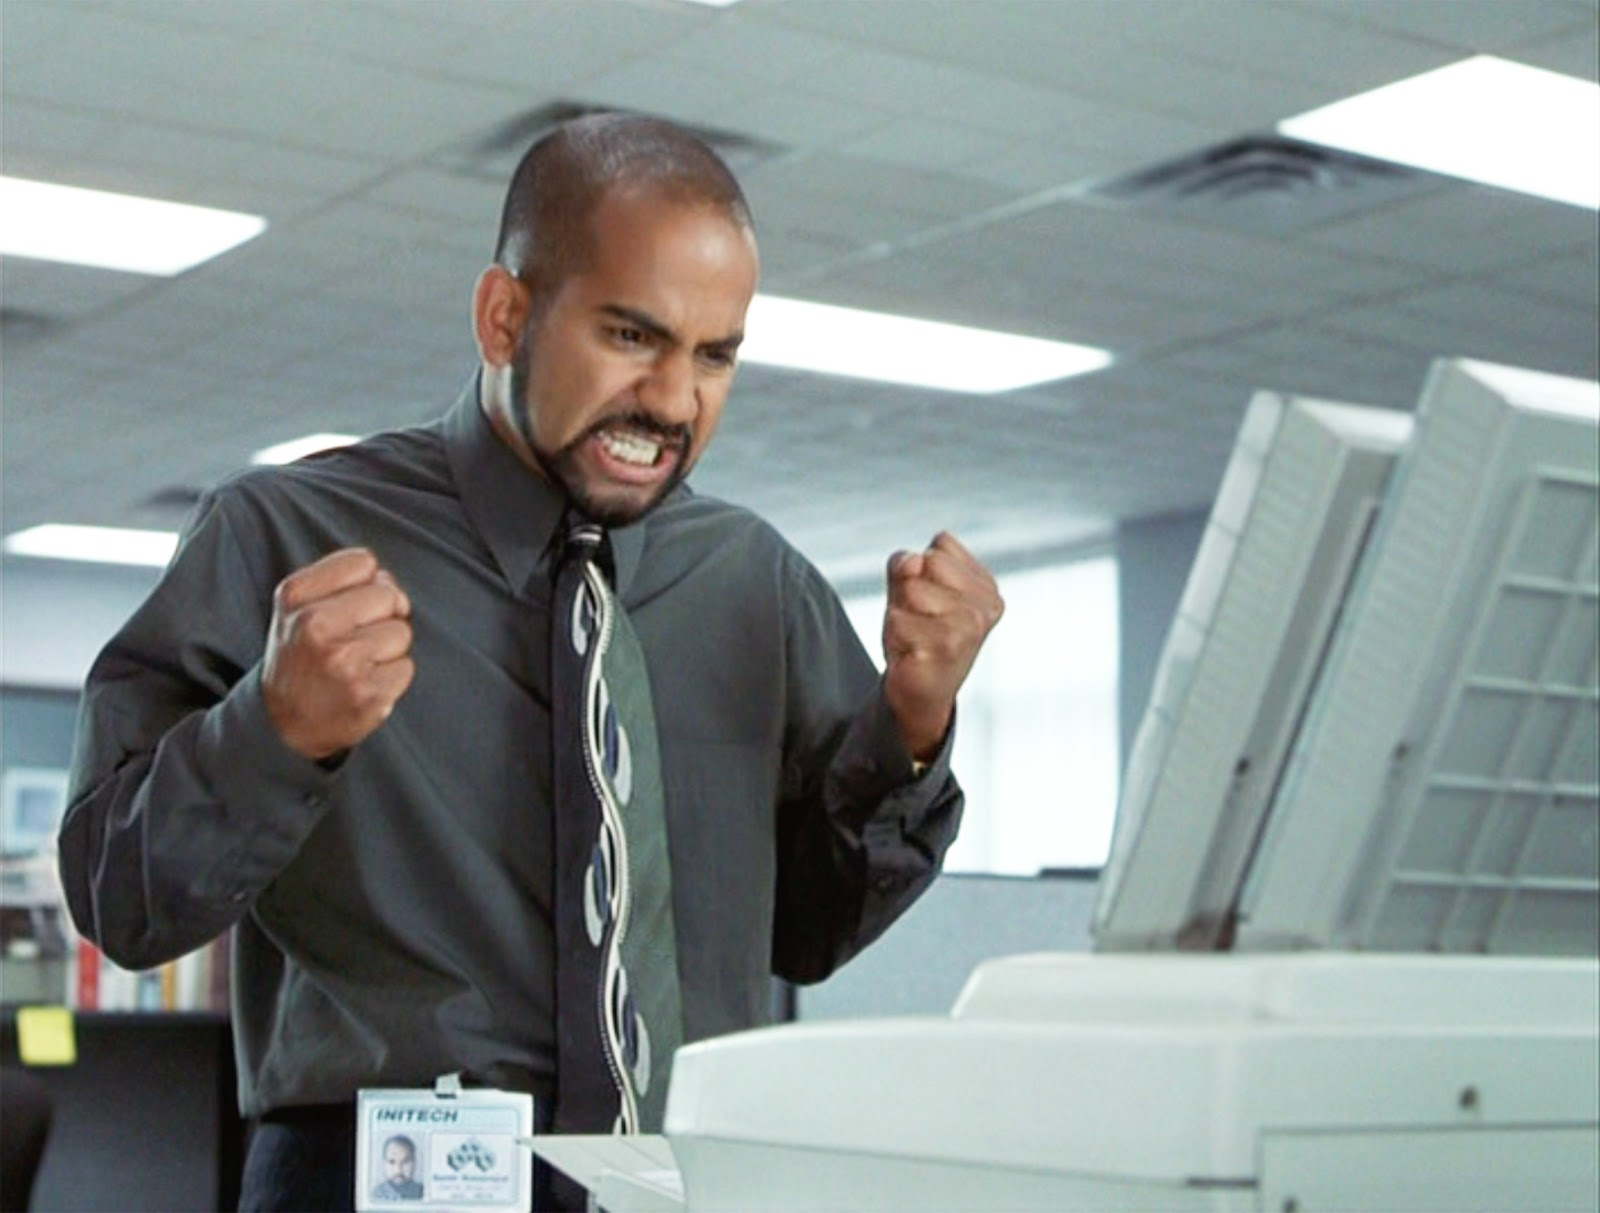 Office space printer samir